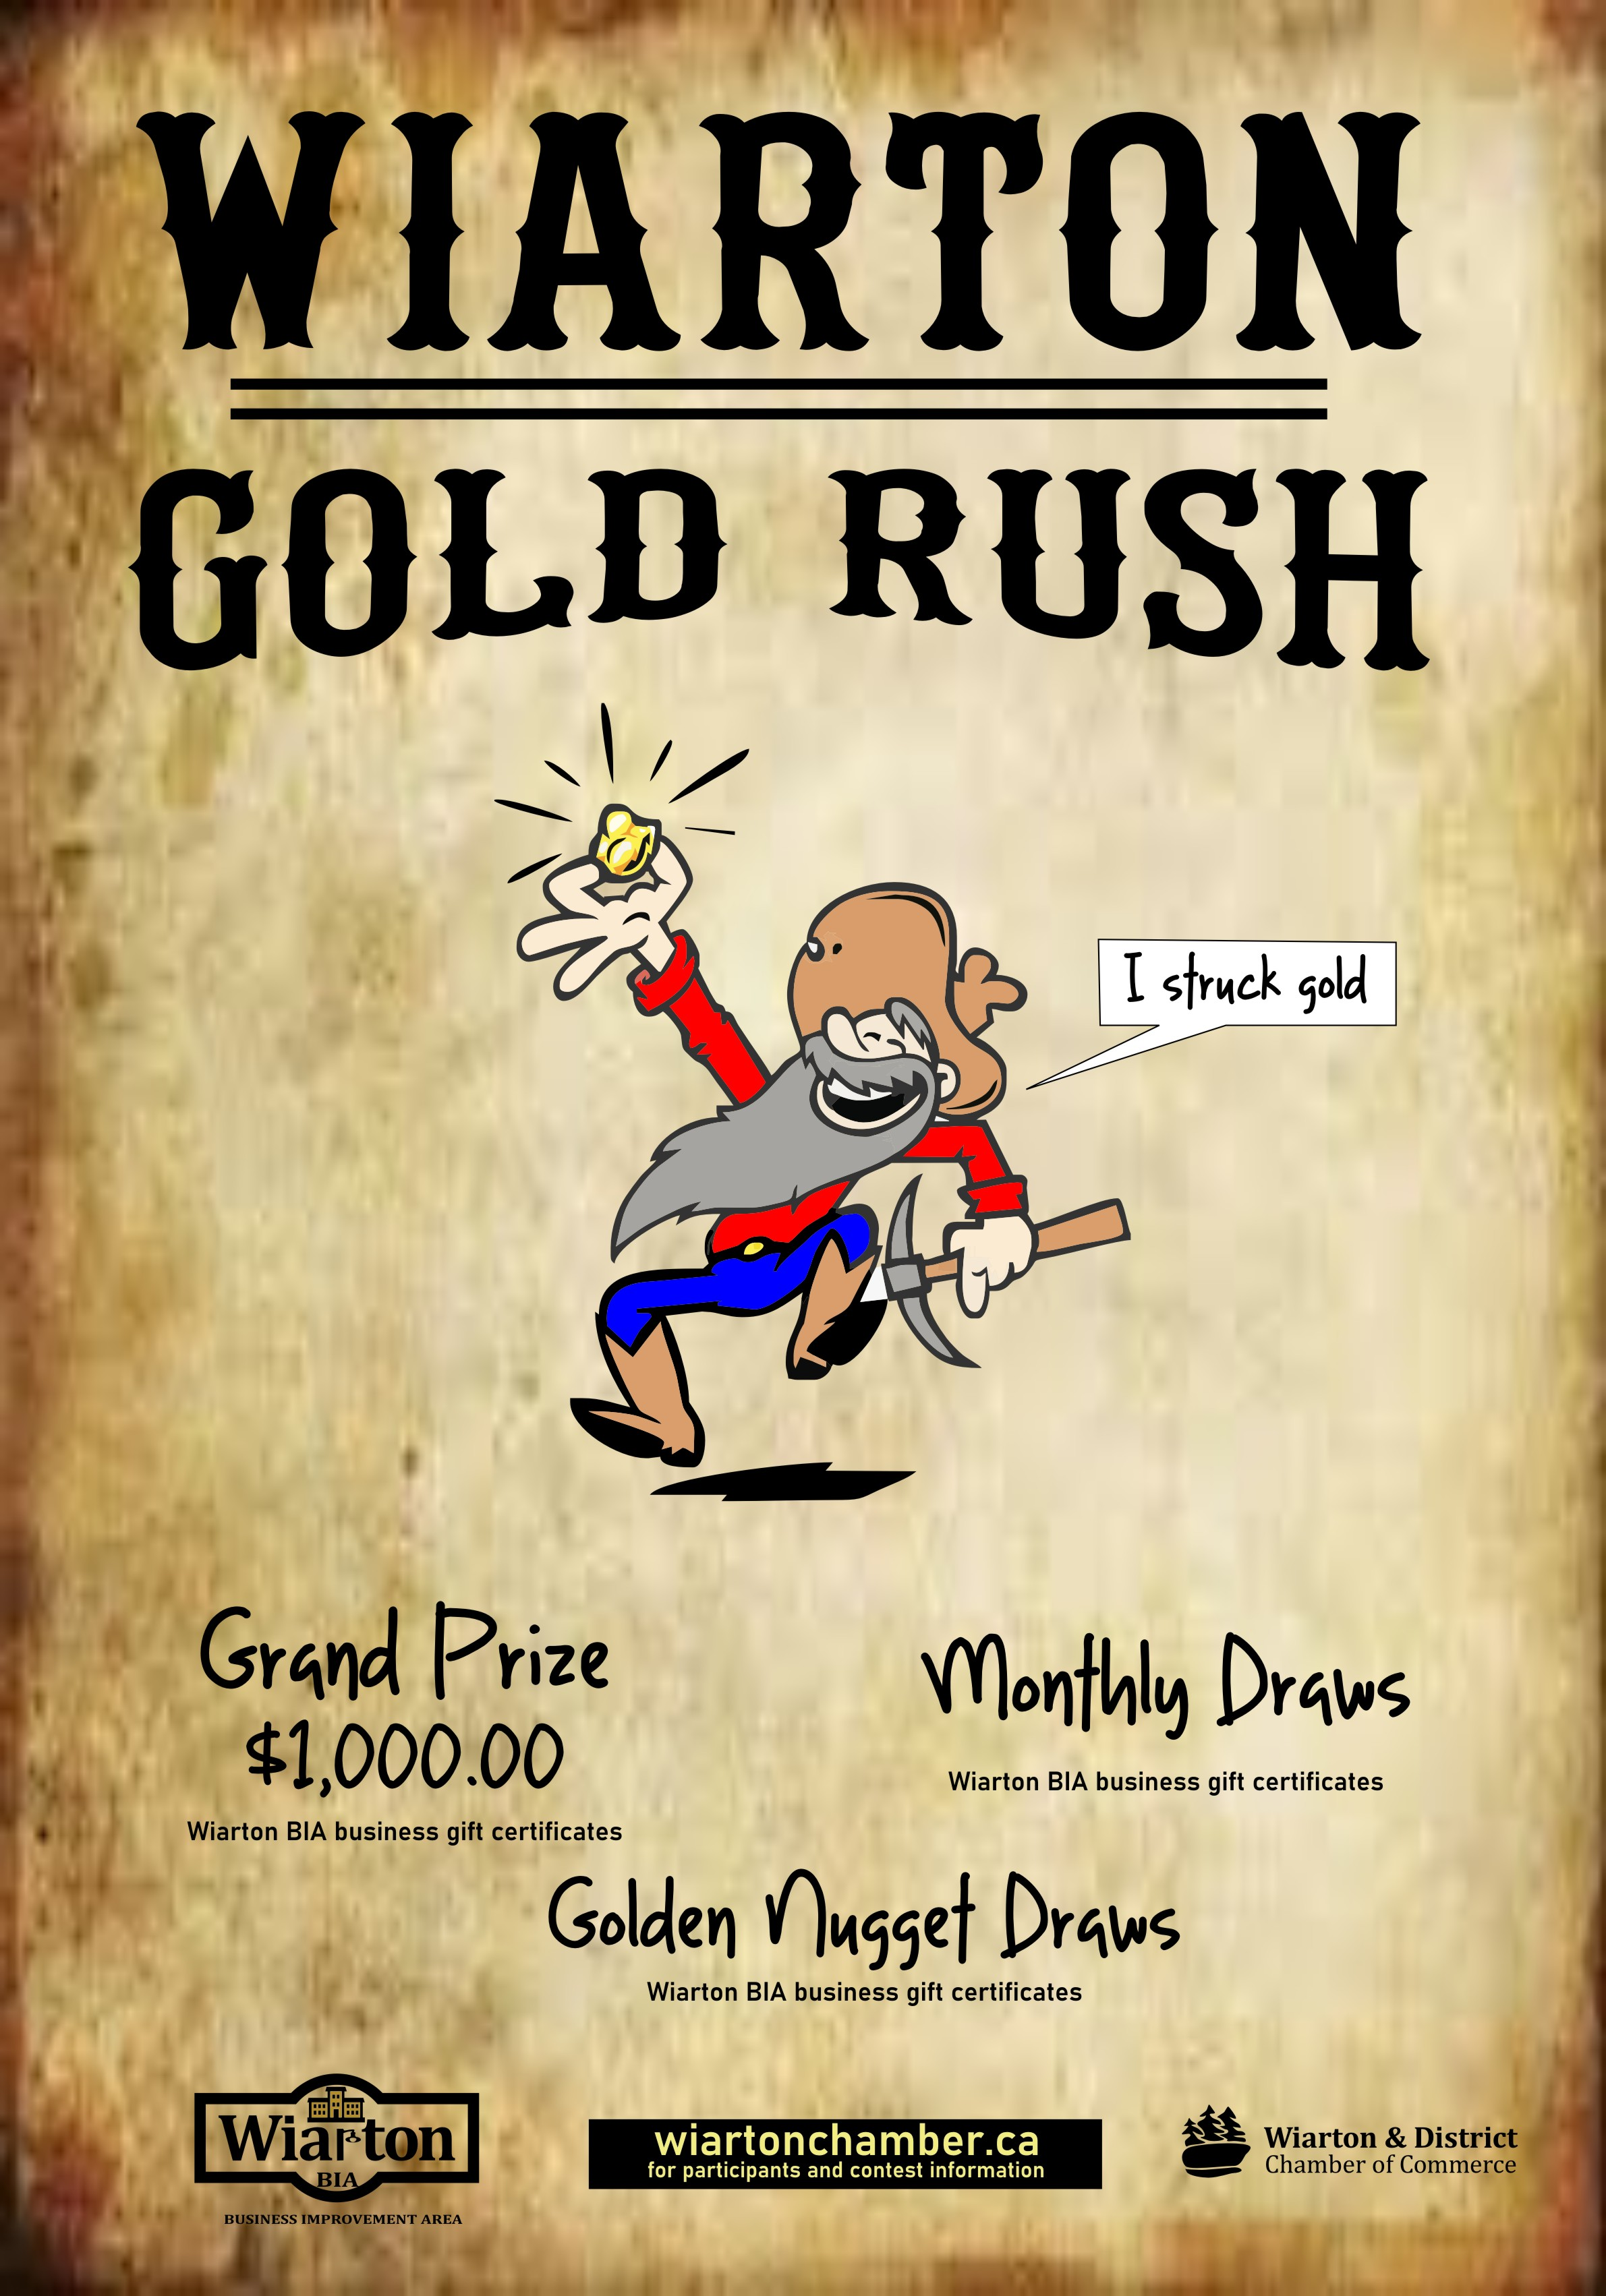 Gold Rush Campaign Poster